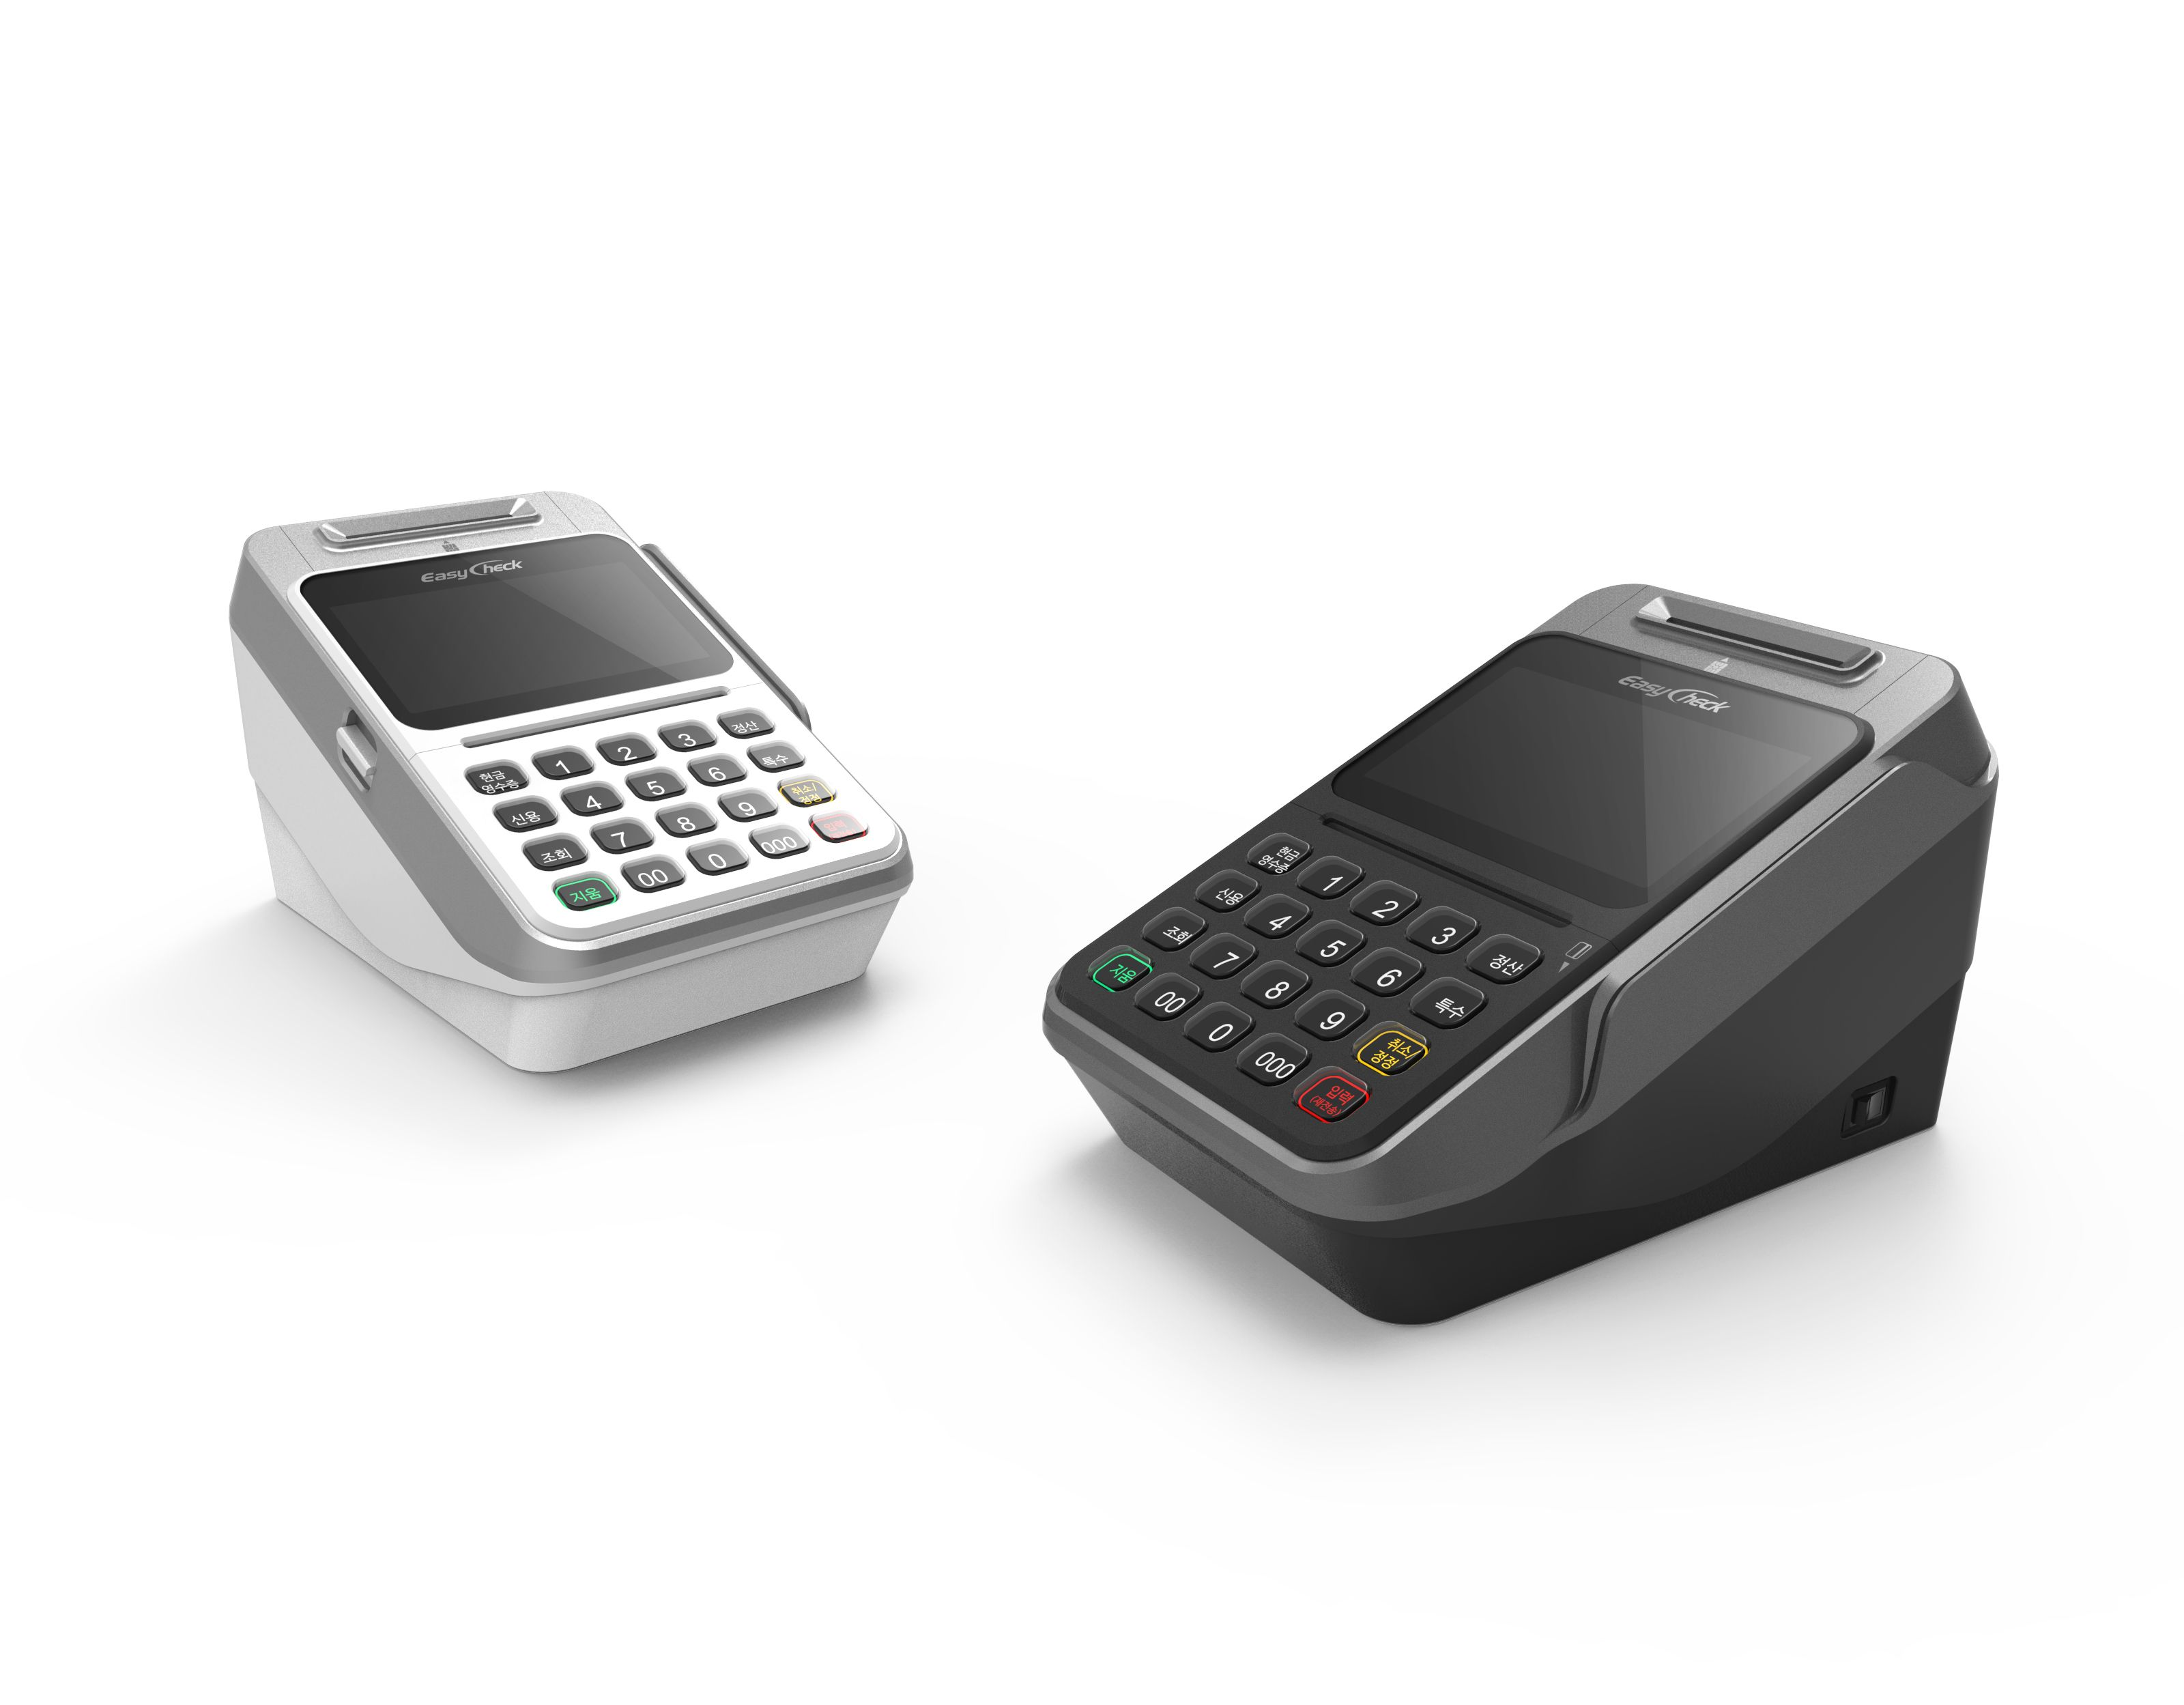 Pin by popping on Payment , POS Electronic products, Pos